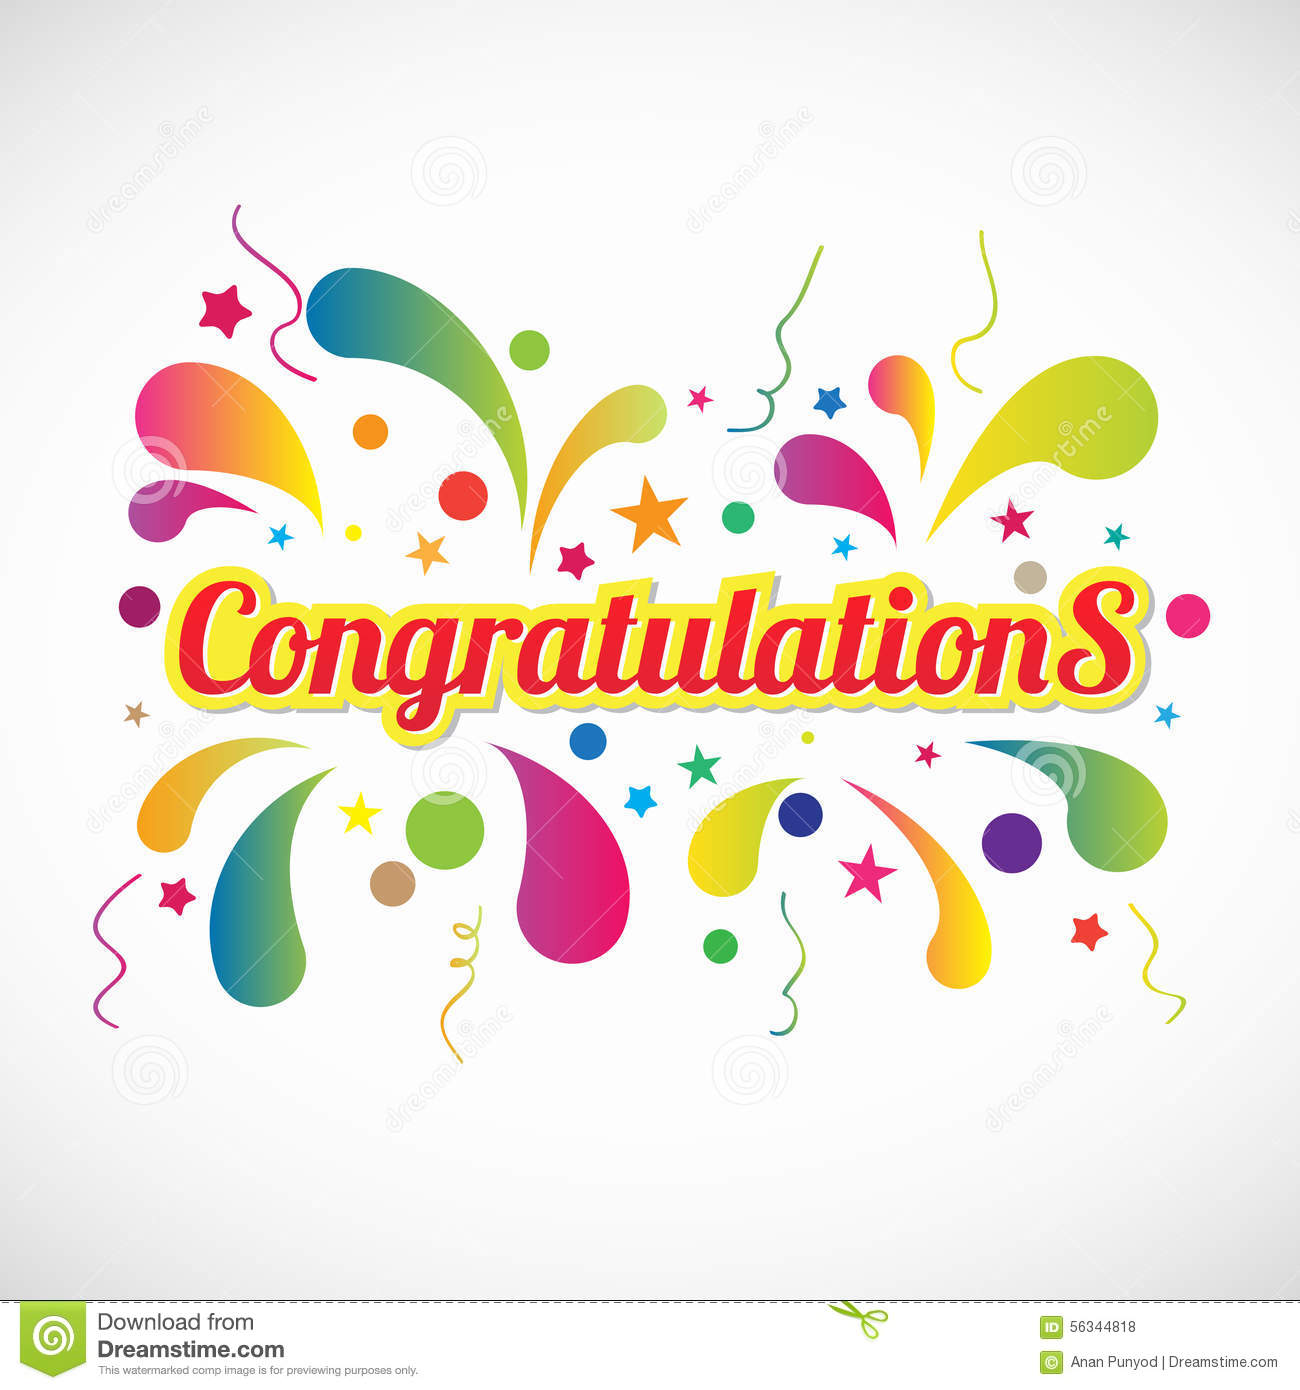 Congratulations clipart win, Congratulations win Transparent.